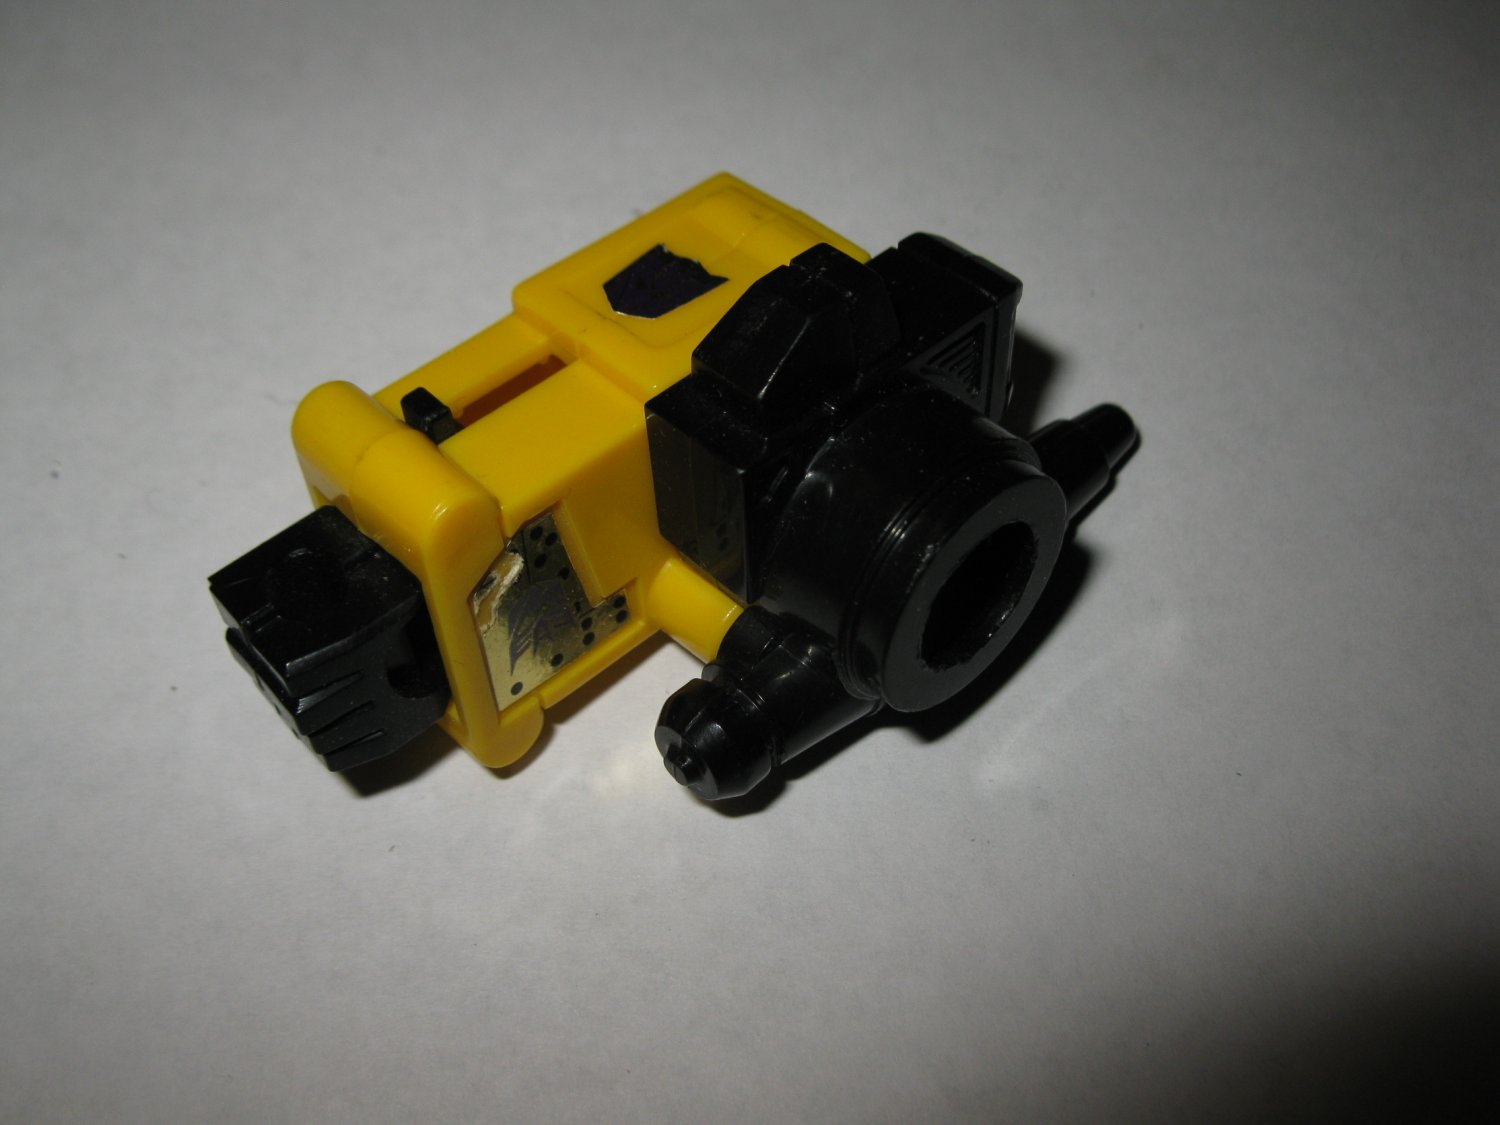 G1 Transformers Action figure part: 1986 RazorClaw - Full Left Arm